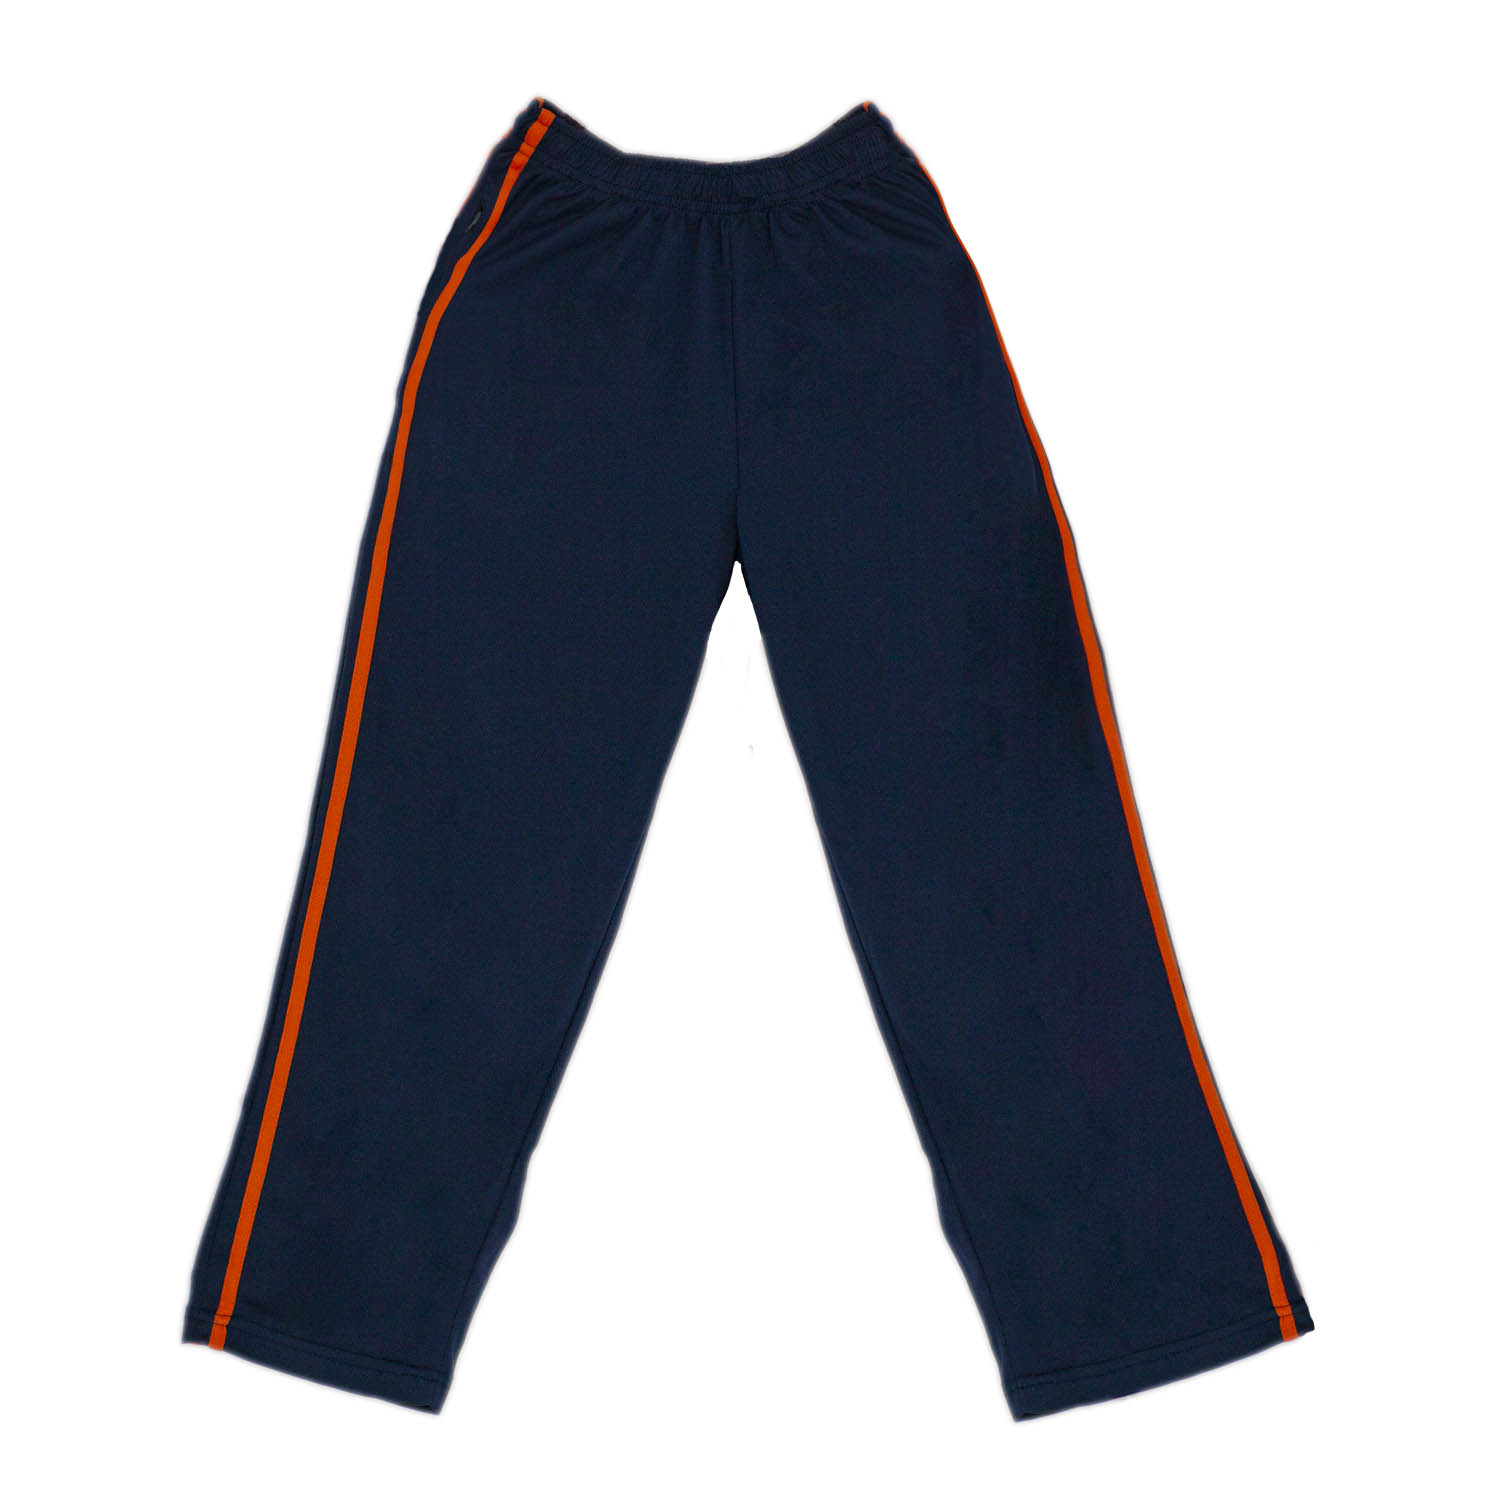 STRIPE Girls Pe Navy Blue Trouser With Orange Stripe